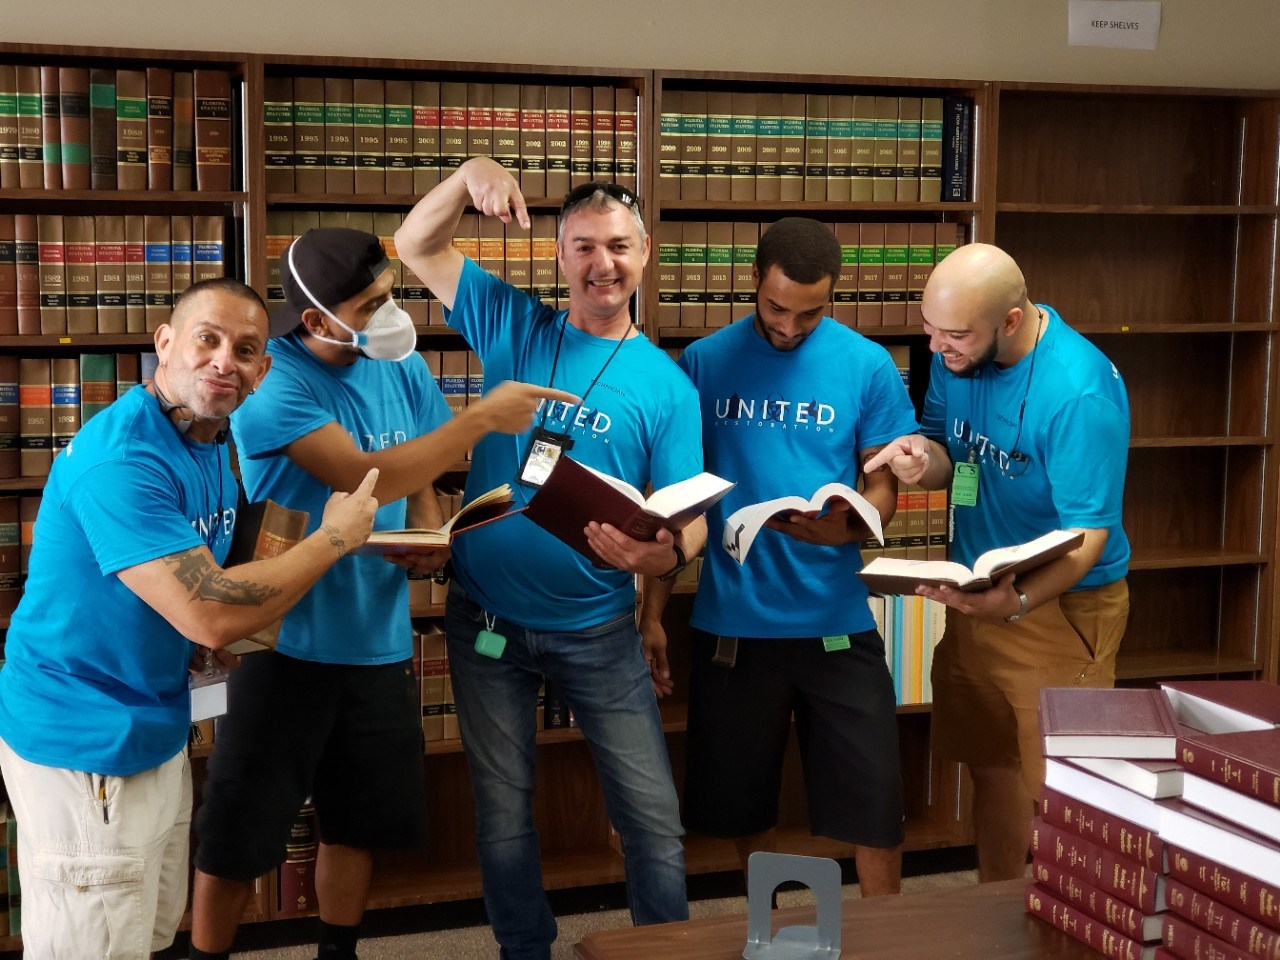 united restoration team members pose in broward county law library